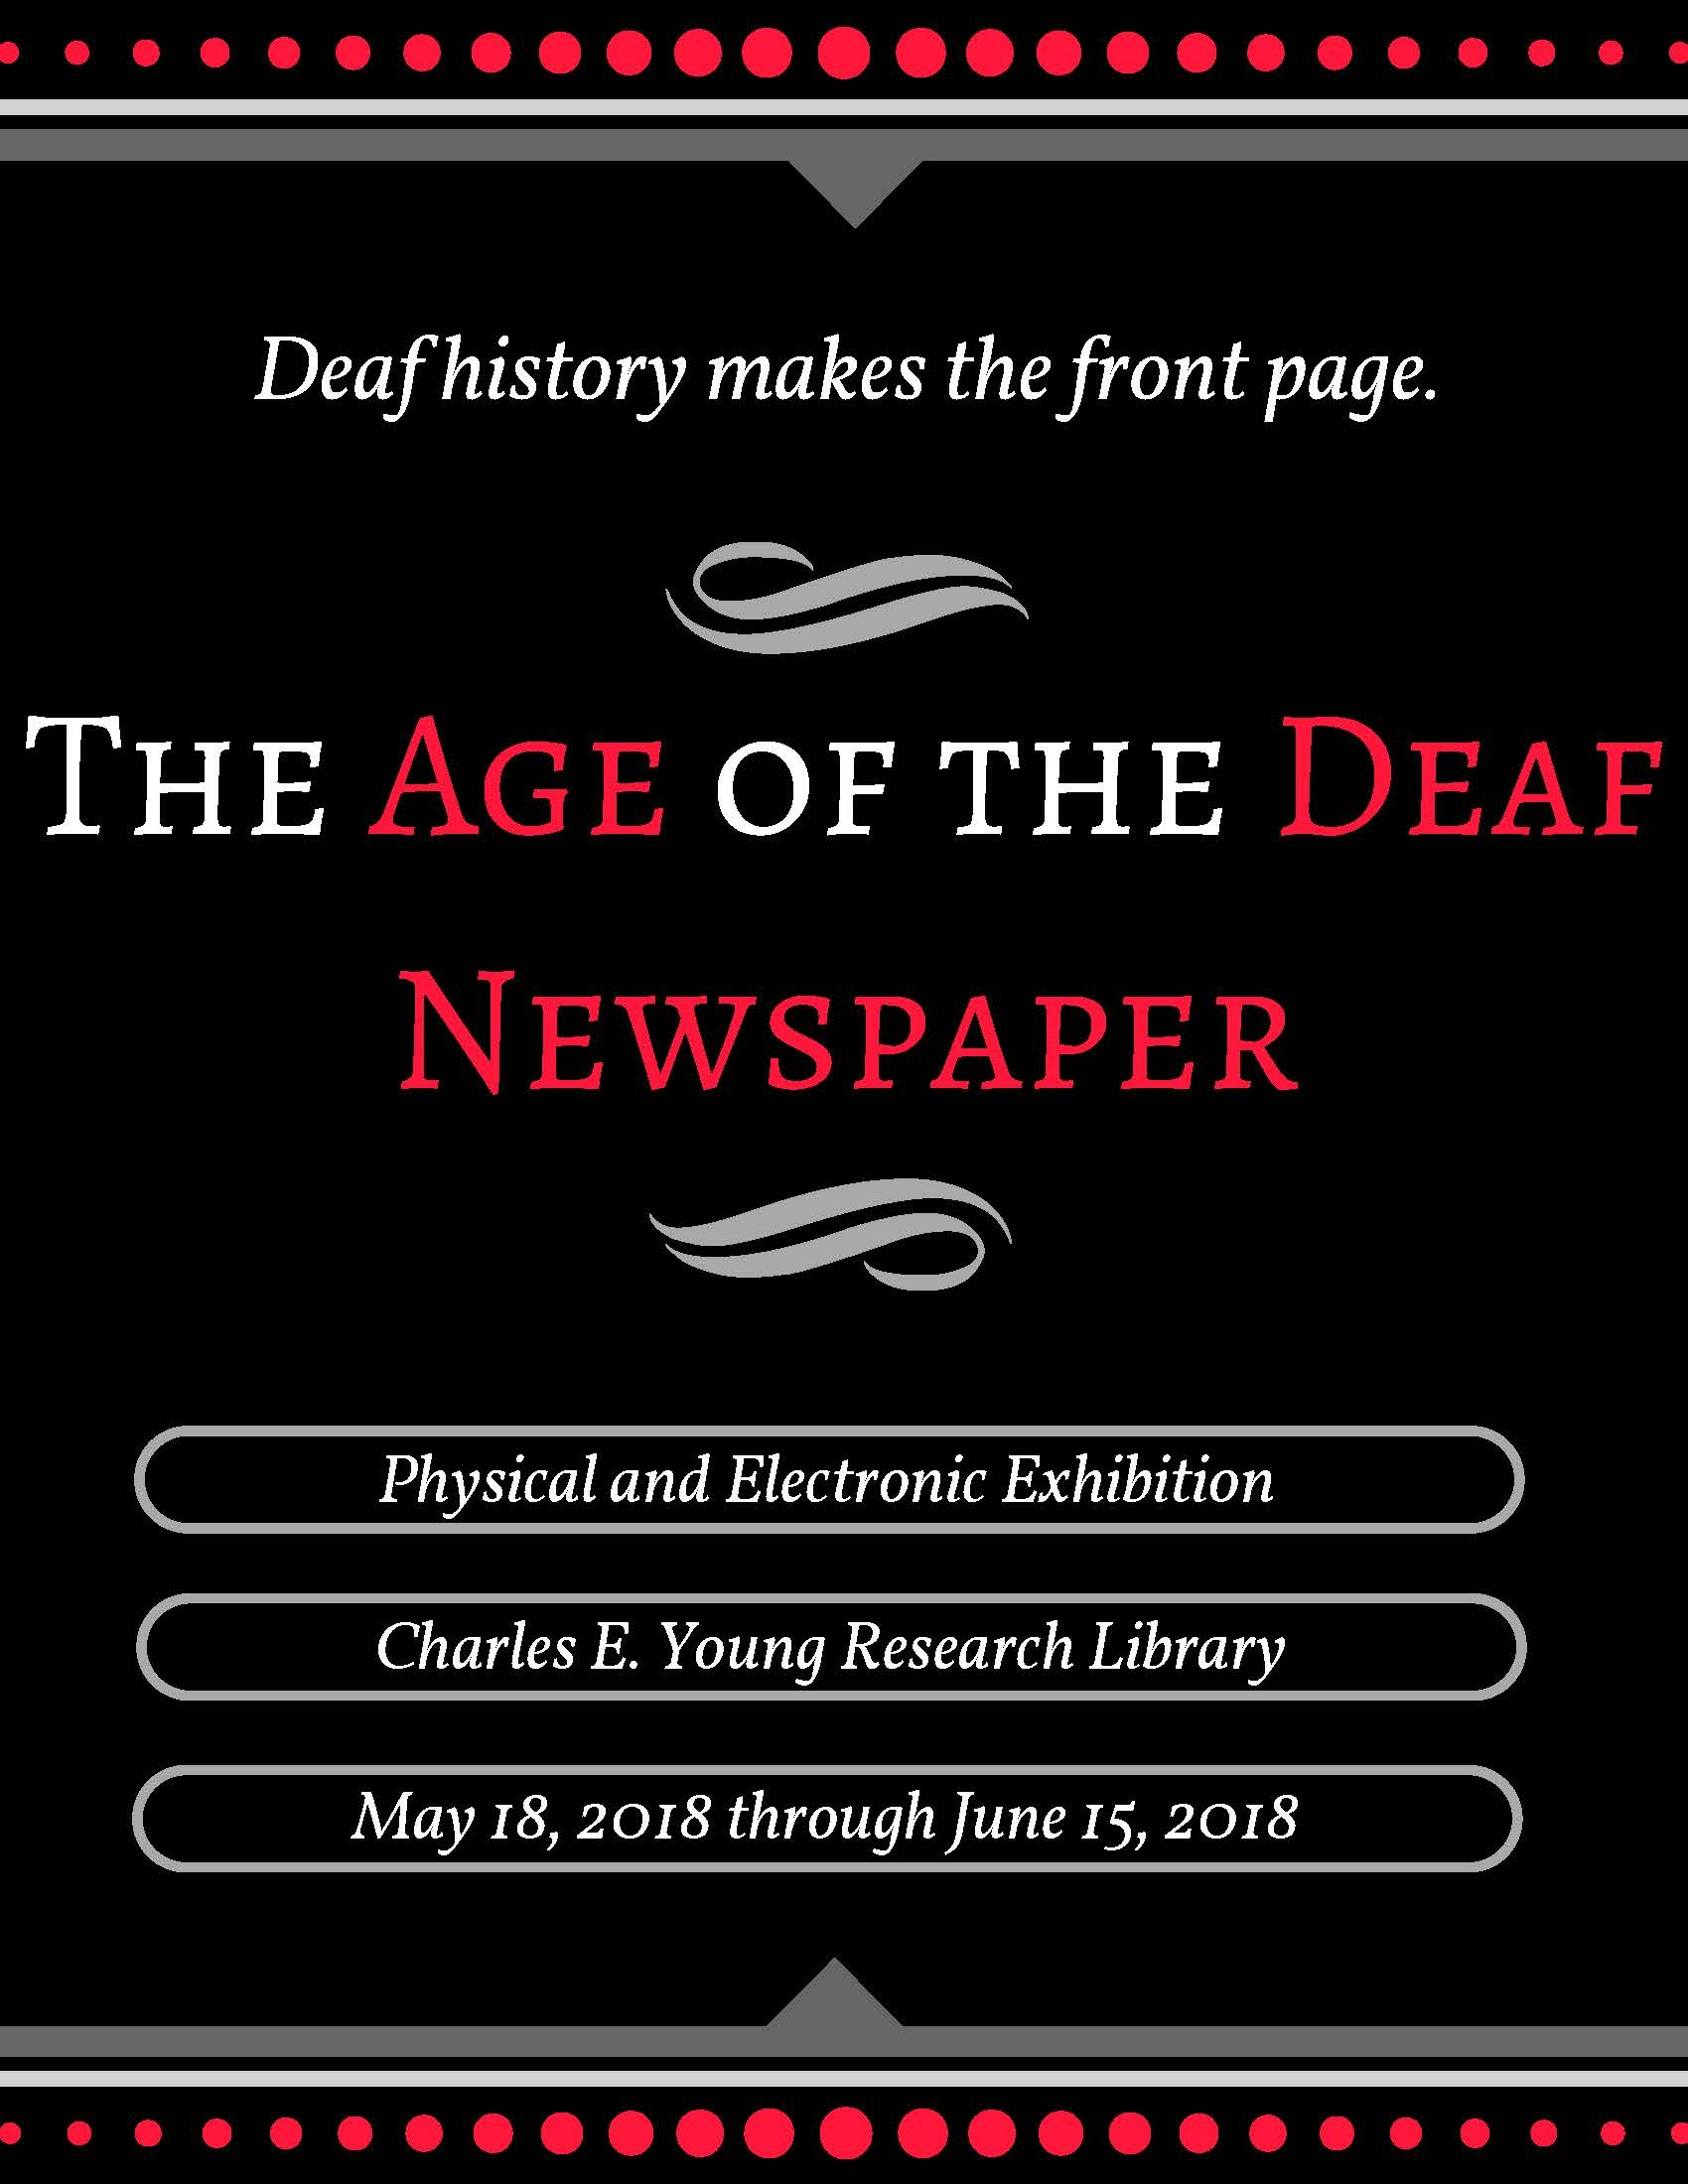 Deaf history makes the front page. The Age of the Deaf Newspaper: Physical and Electronic Exhibition, Charles E. Young Research Library, May 18 through June 15, 2018